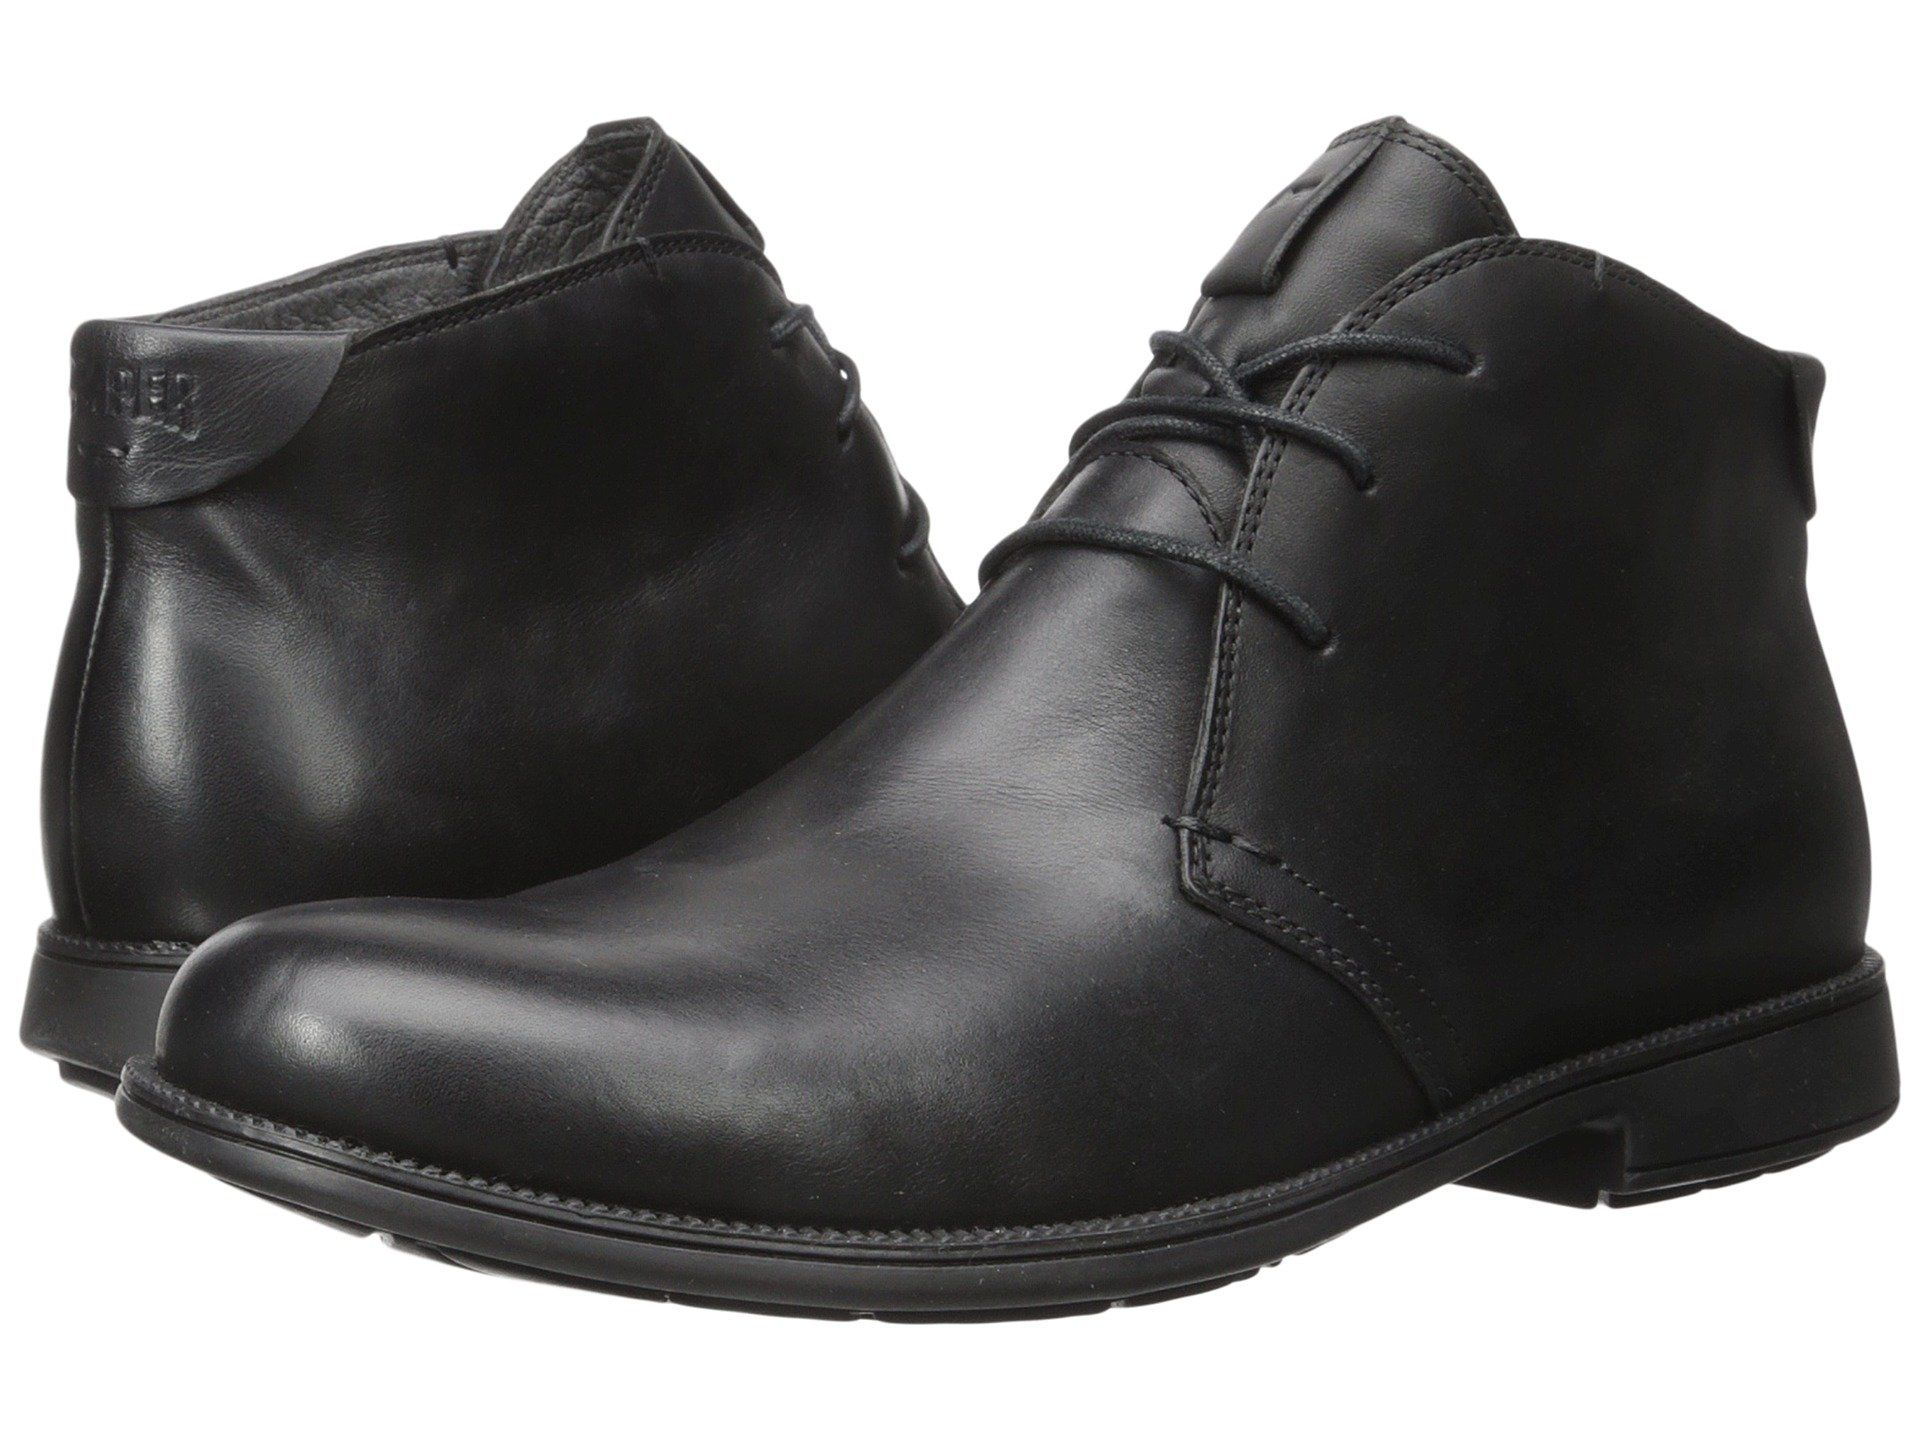 lace-up boots - Black Camper 7pUauOm6n